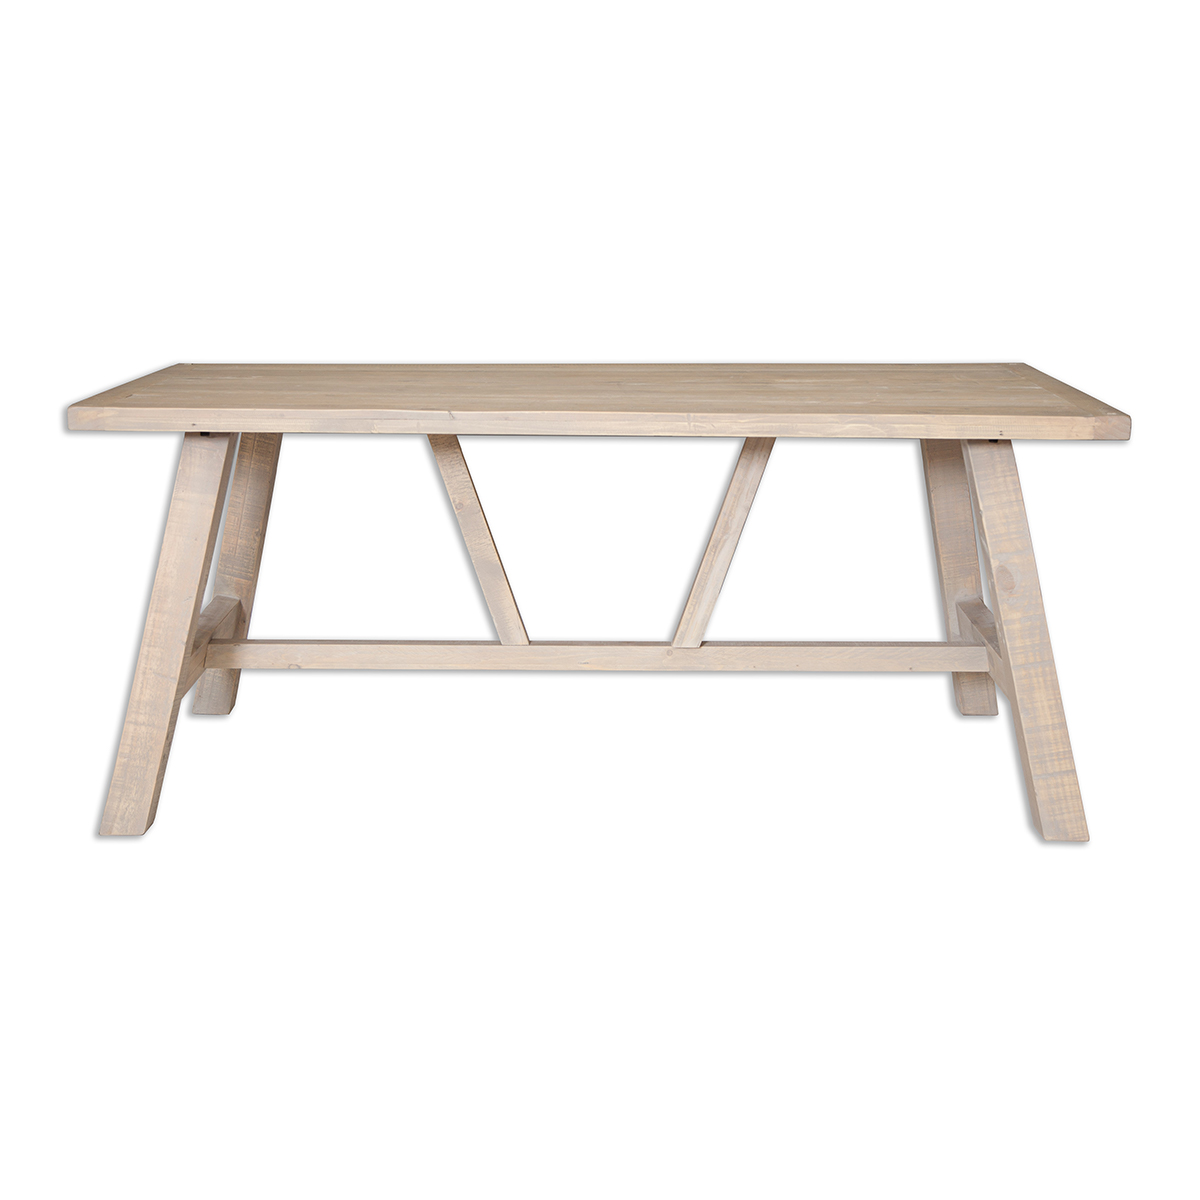 The Witterings Large Trestle Table